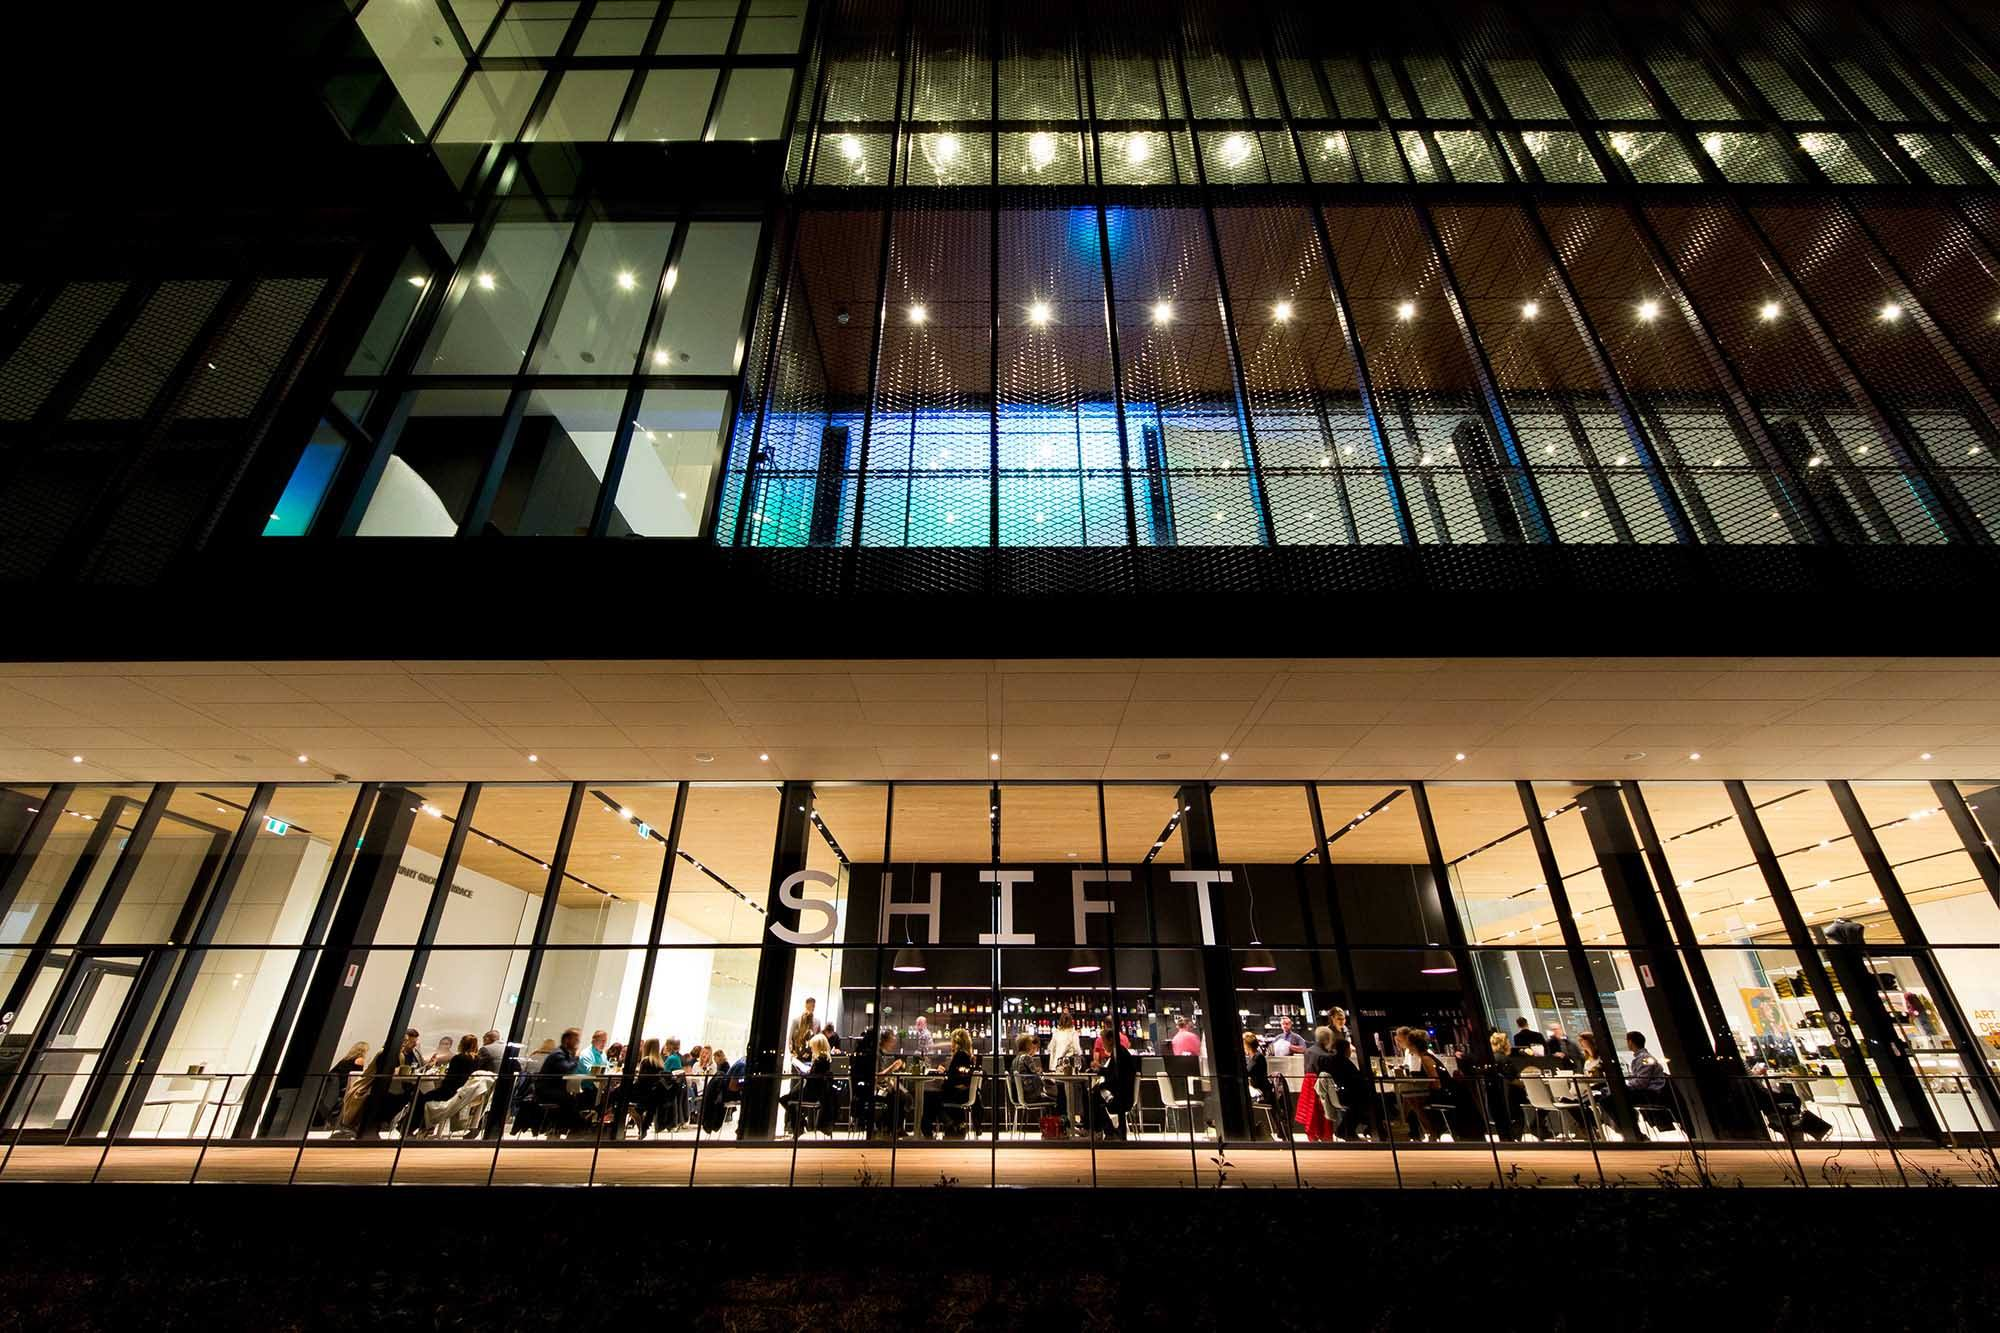 Exterior of Shift Restaurant at night